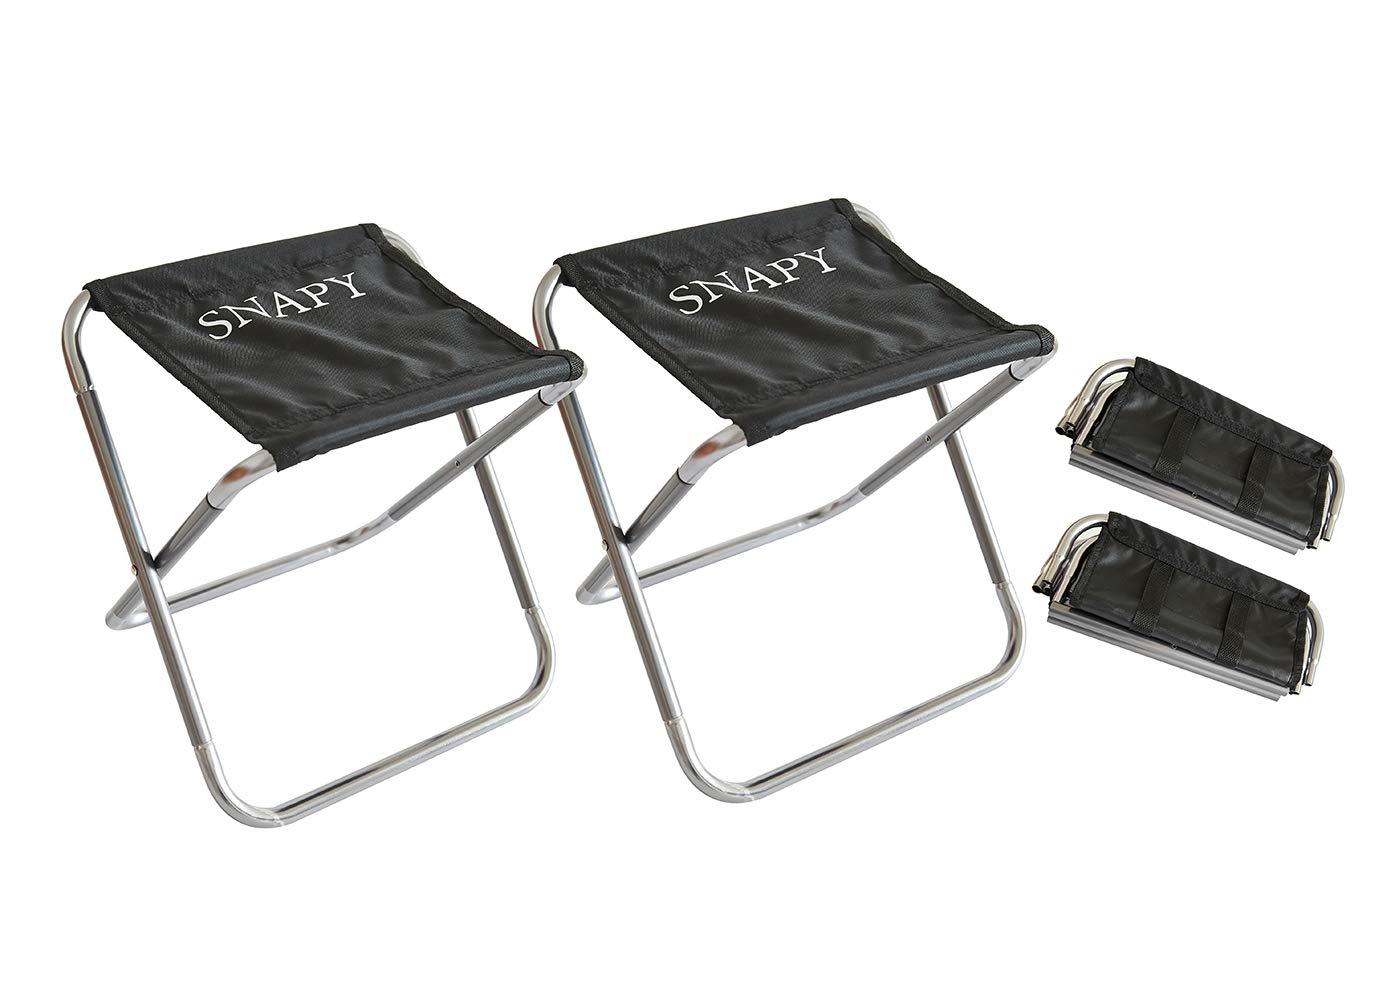 SNAPY 2-Pack Mini Folding Camping Stool, Lightweight Camp Stool, Portable Folding Camp Chair, Outdoor Ultralight Camping Chair for BBQ, Camping, Fishing, Travel, Hiking (12''x11''x12.3'', Silver Grey)